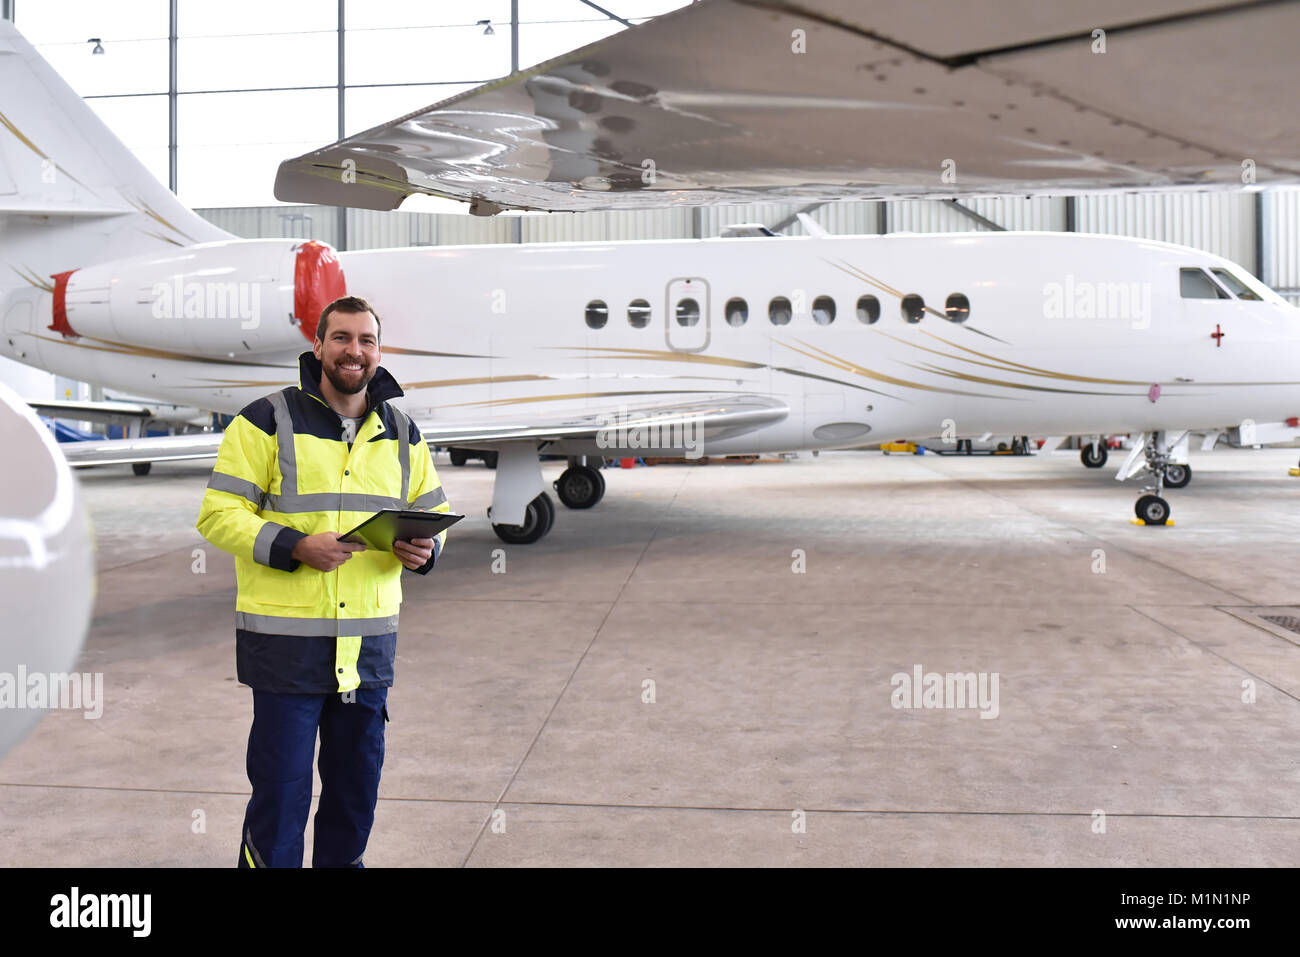 Portrait of an aircraft mechanic in a hangar with jets at the airport - Checking the aircraft for safety and technical - Stock Image